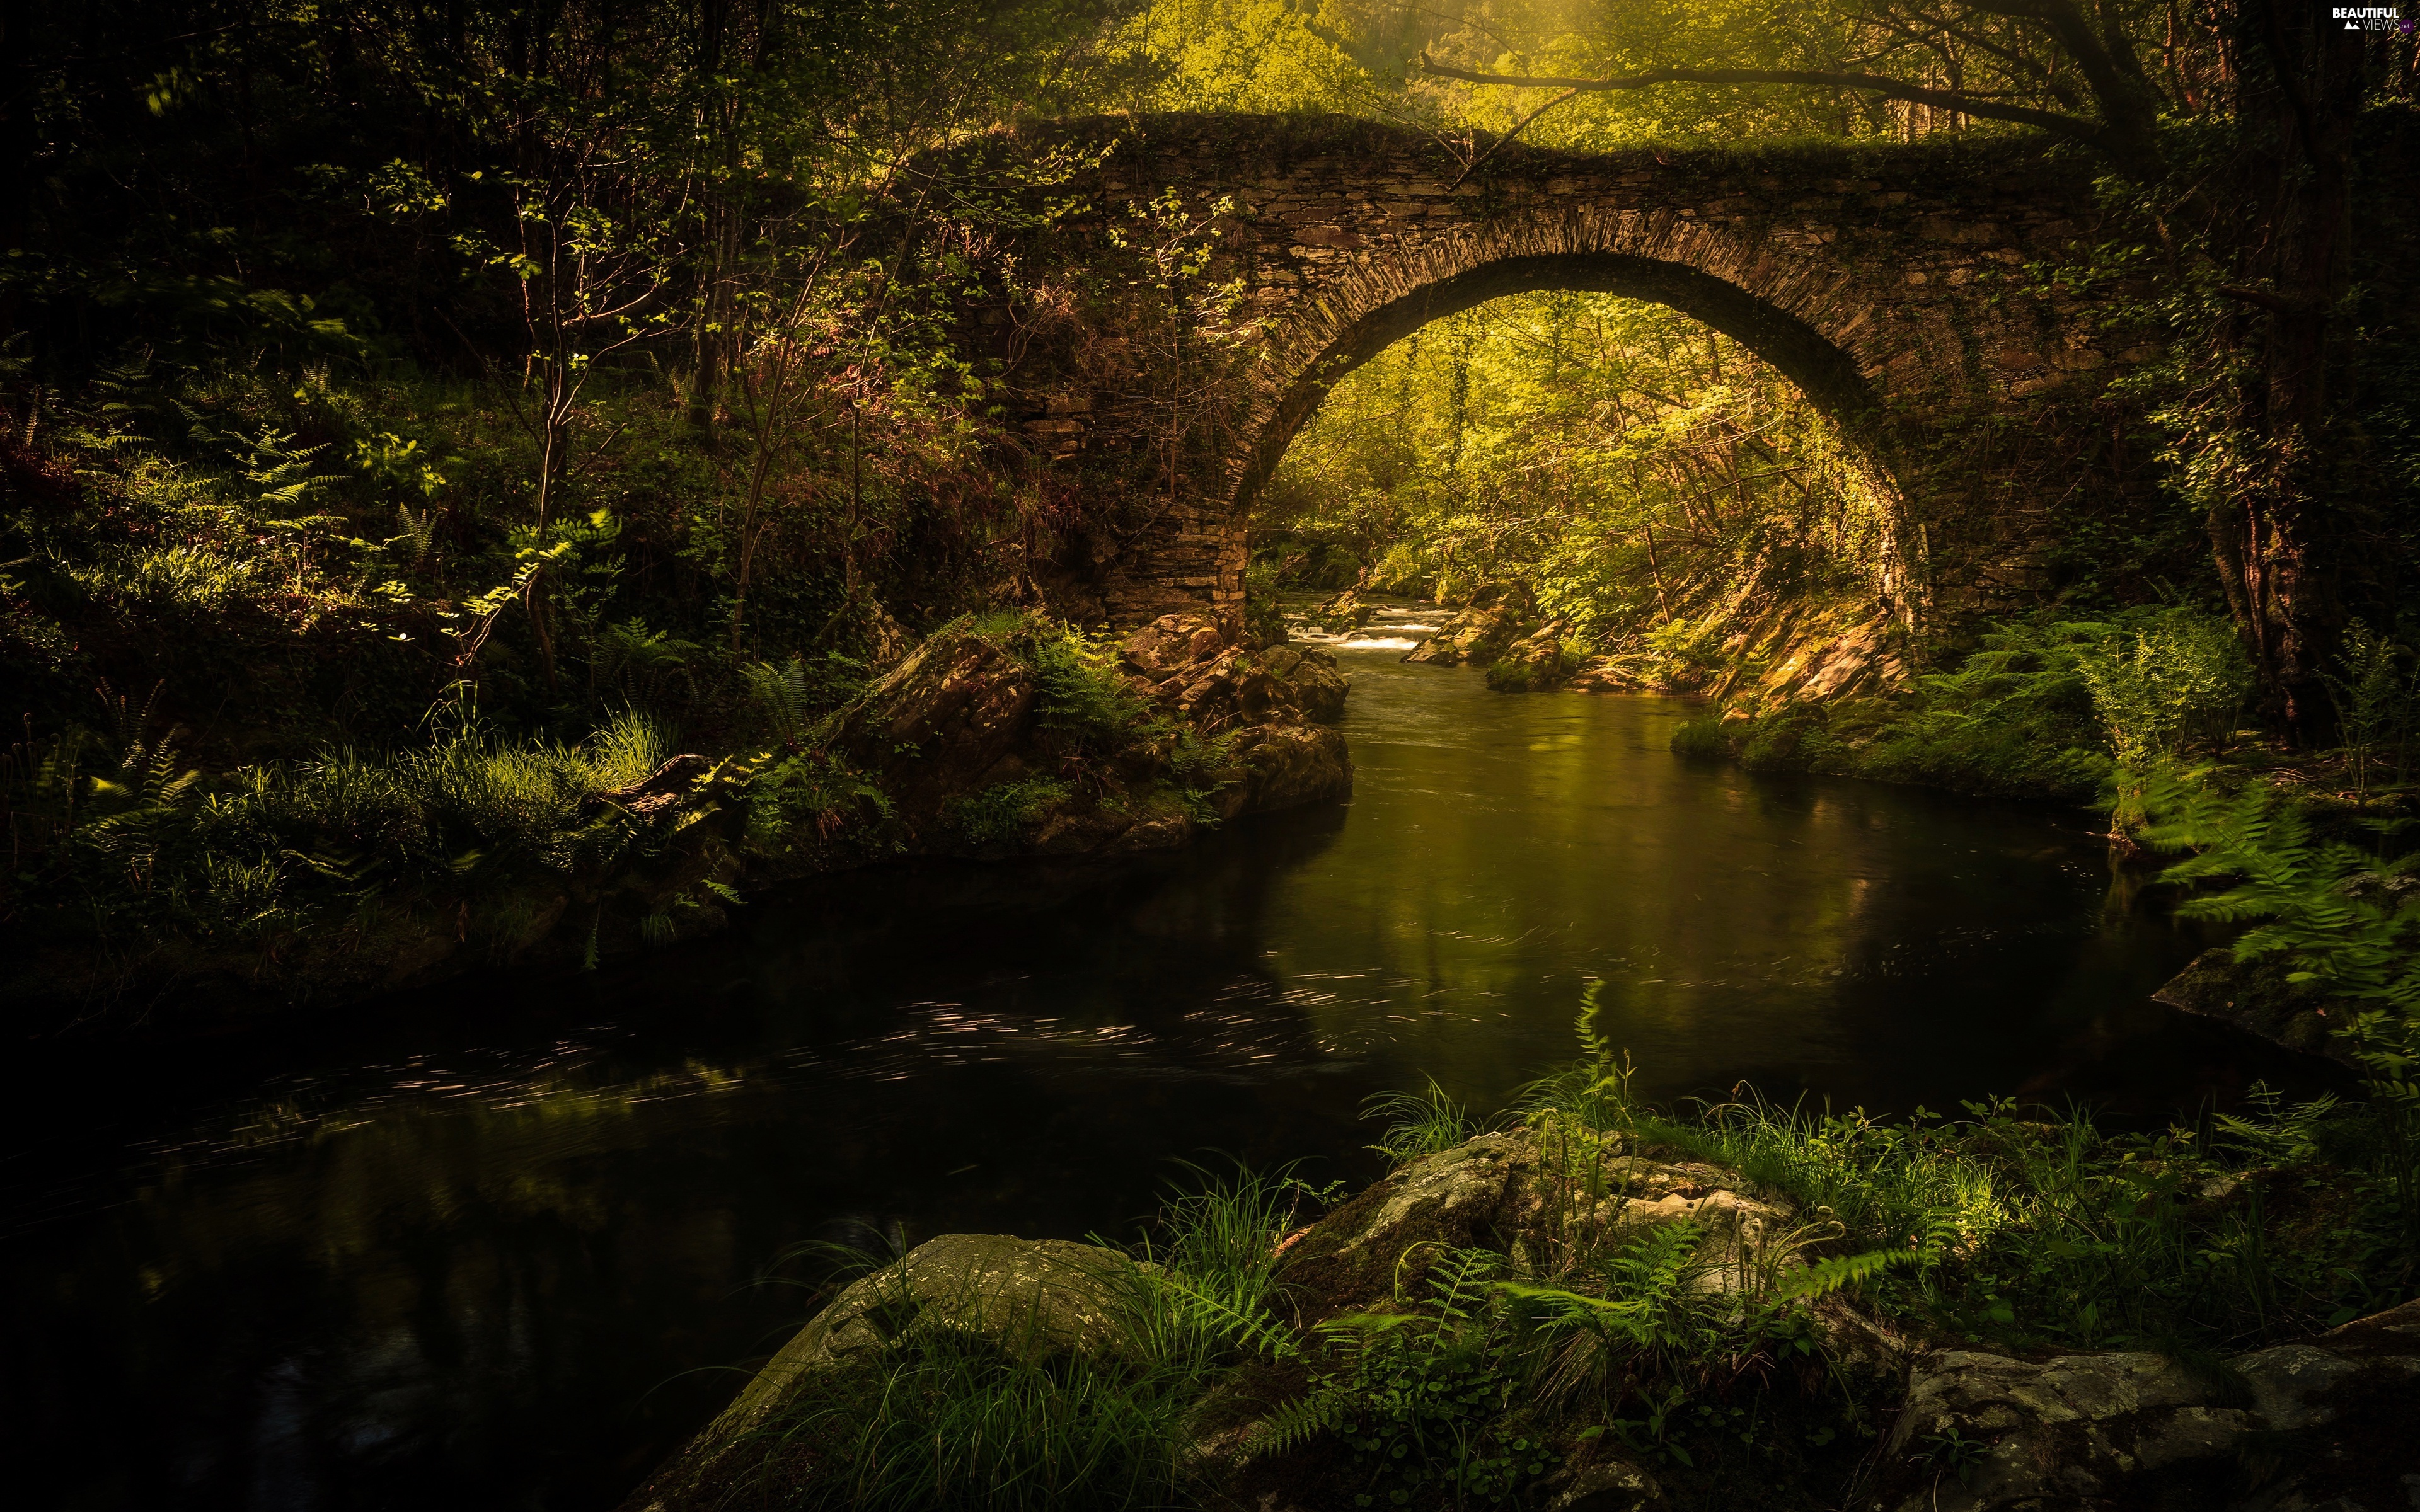 River, trees, Plants, viewes, fern, Arch Bridge, stone, Stones